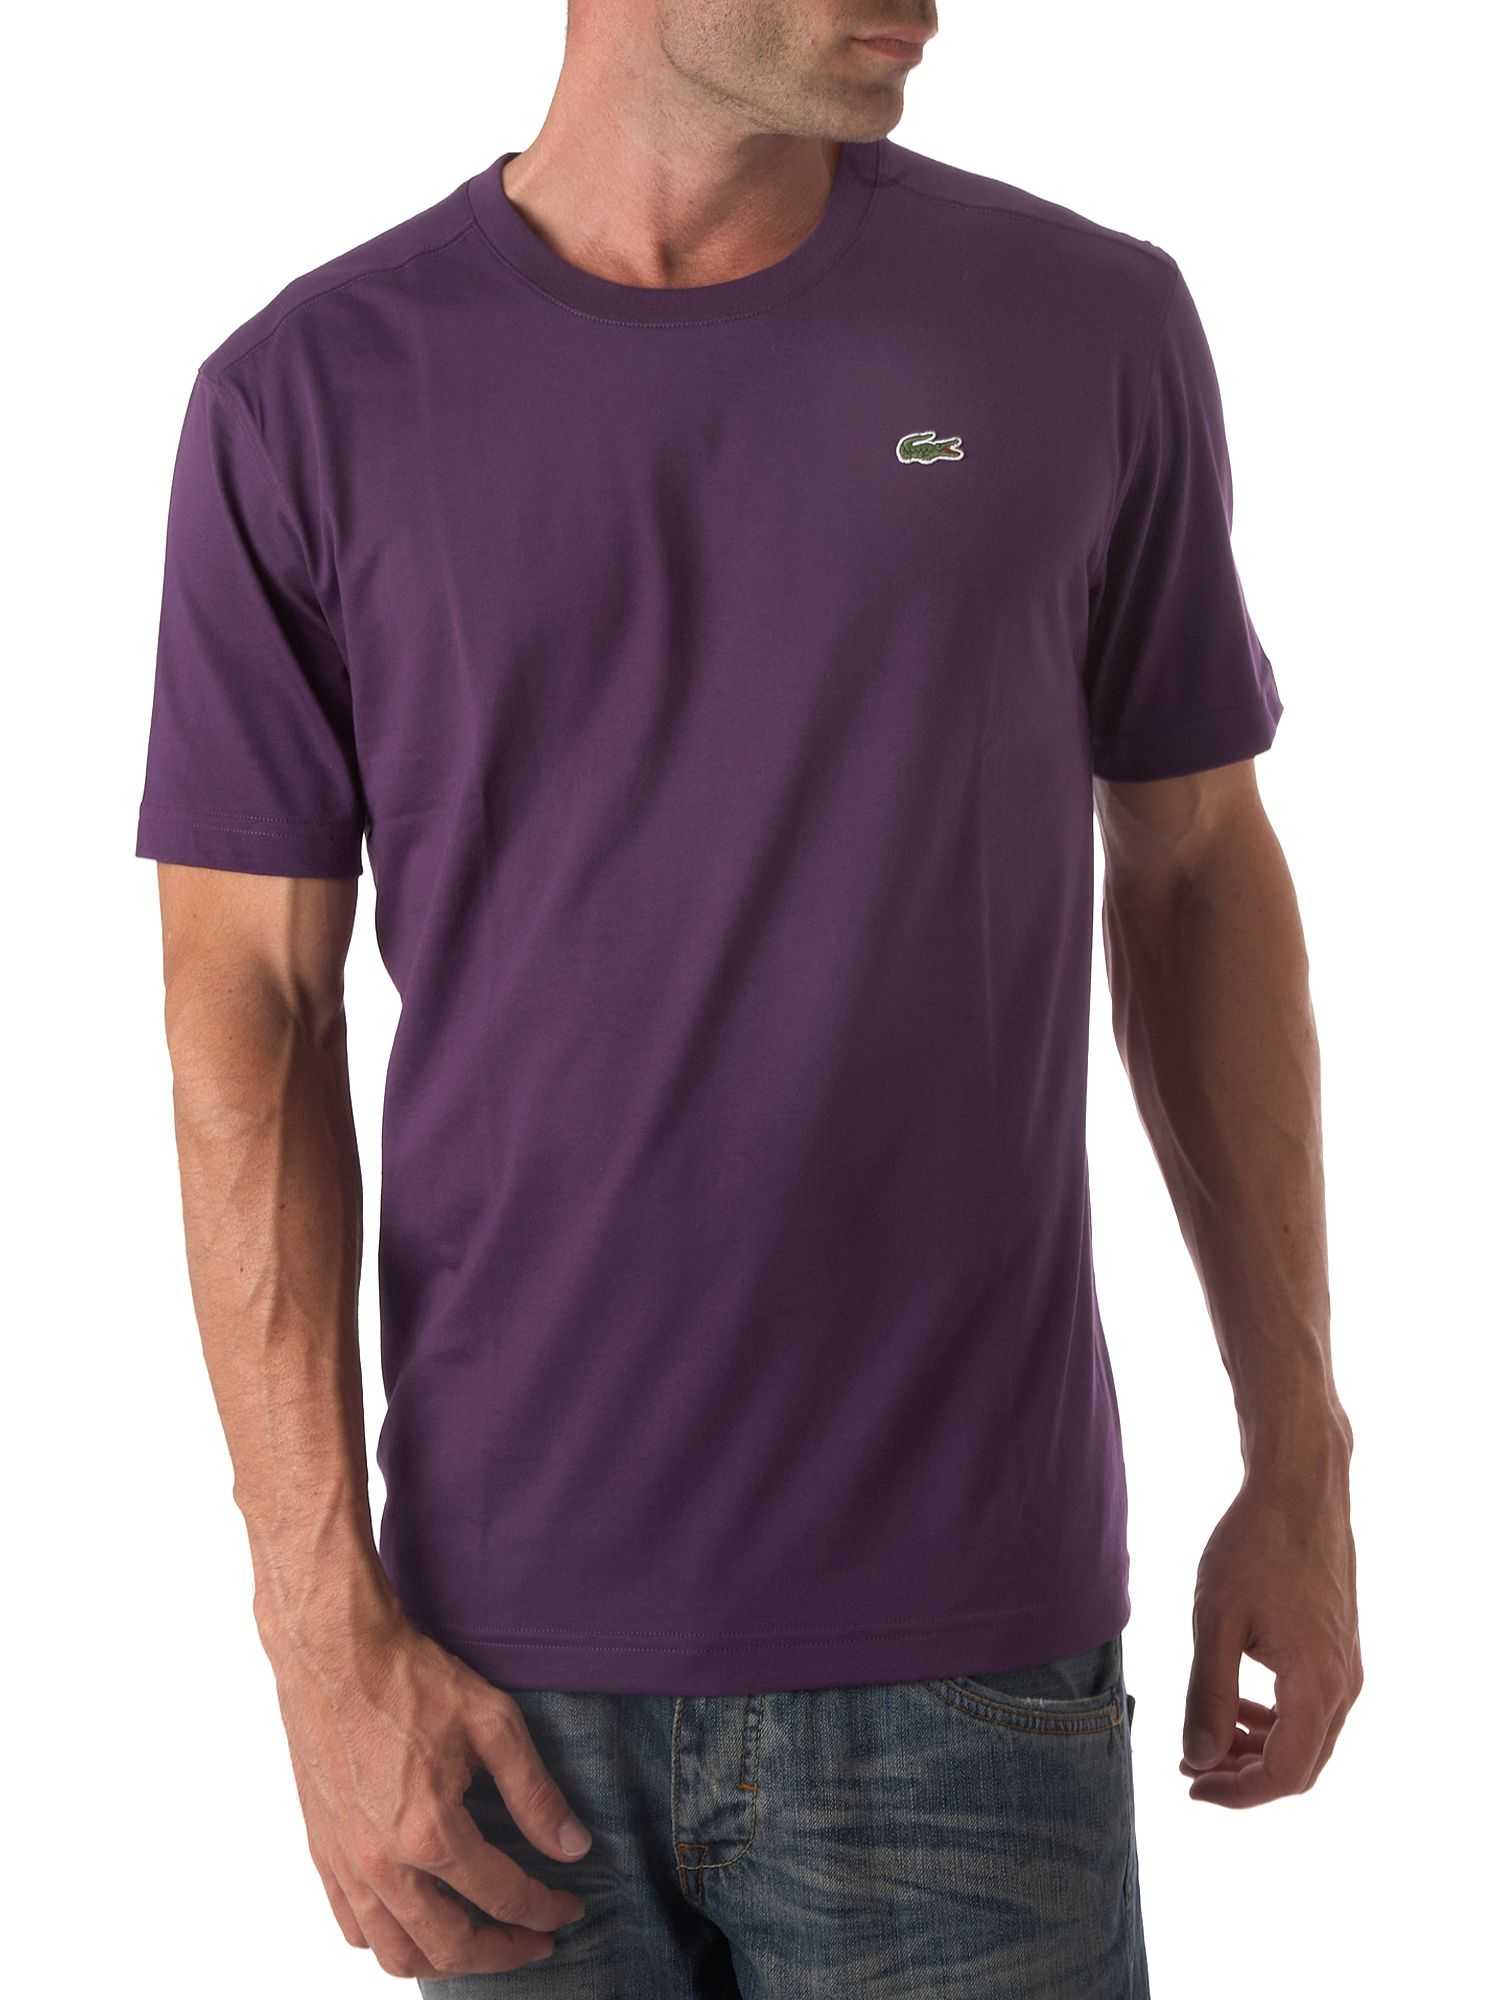 Lacoste Short sleeve basic T-shirt Purple product image